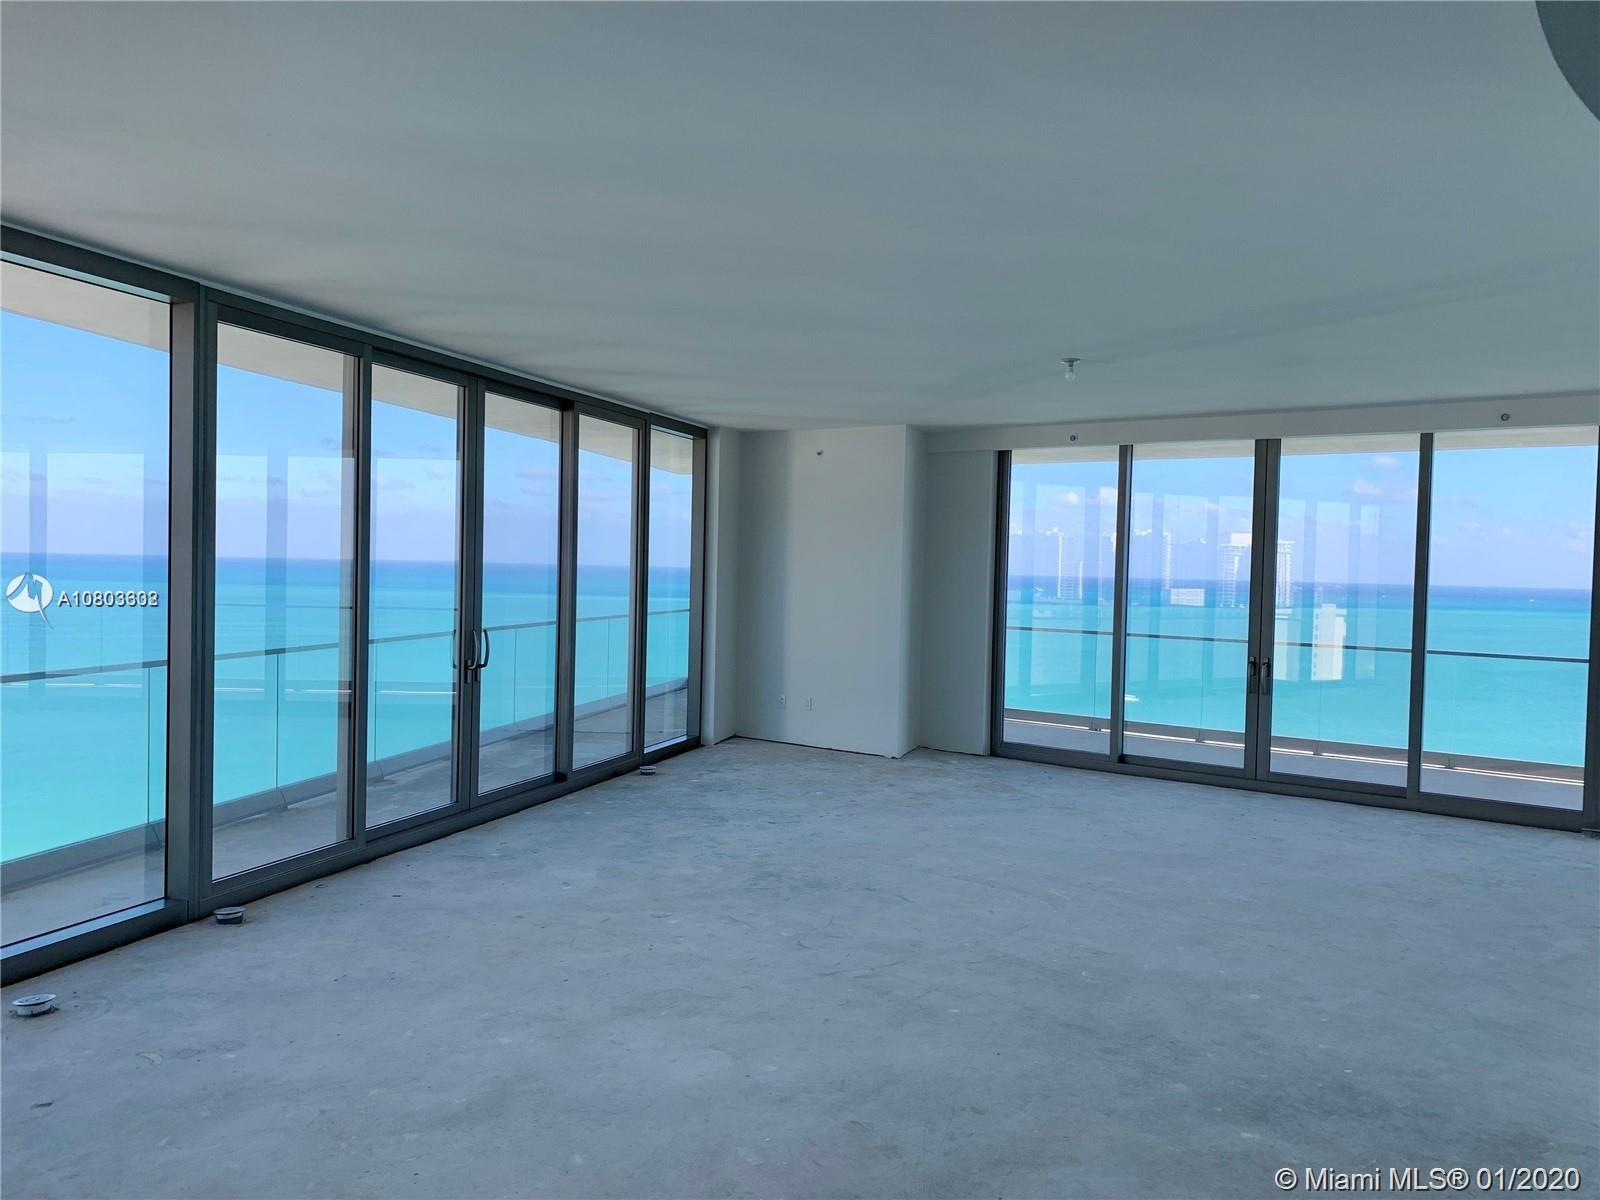 18975 Collins Ave, Unit #1500 Luxury Real Estate